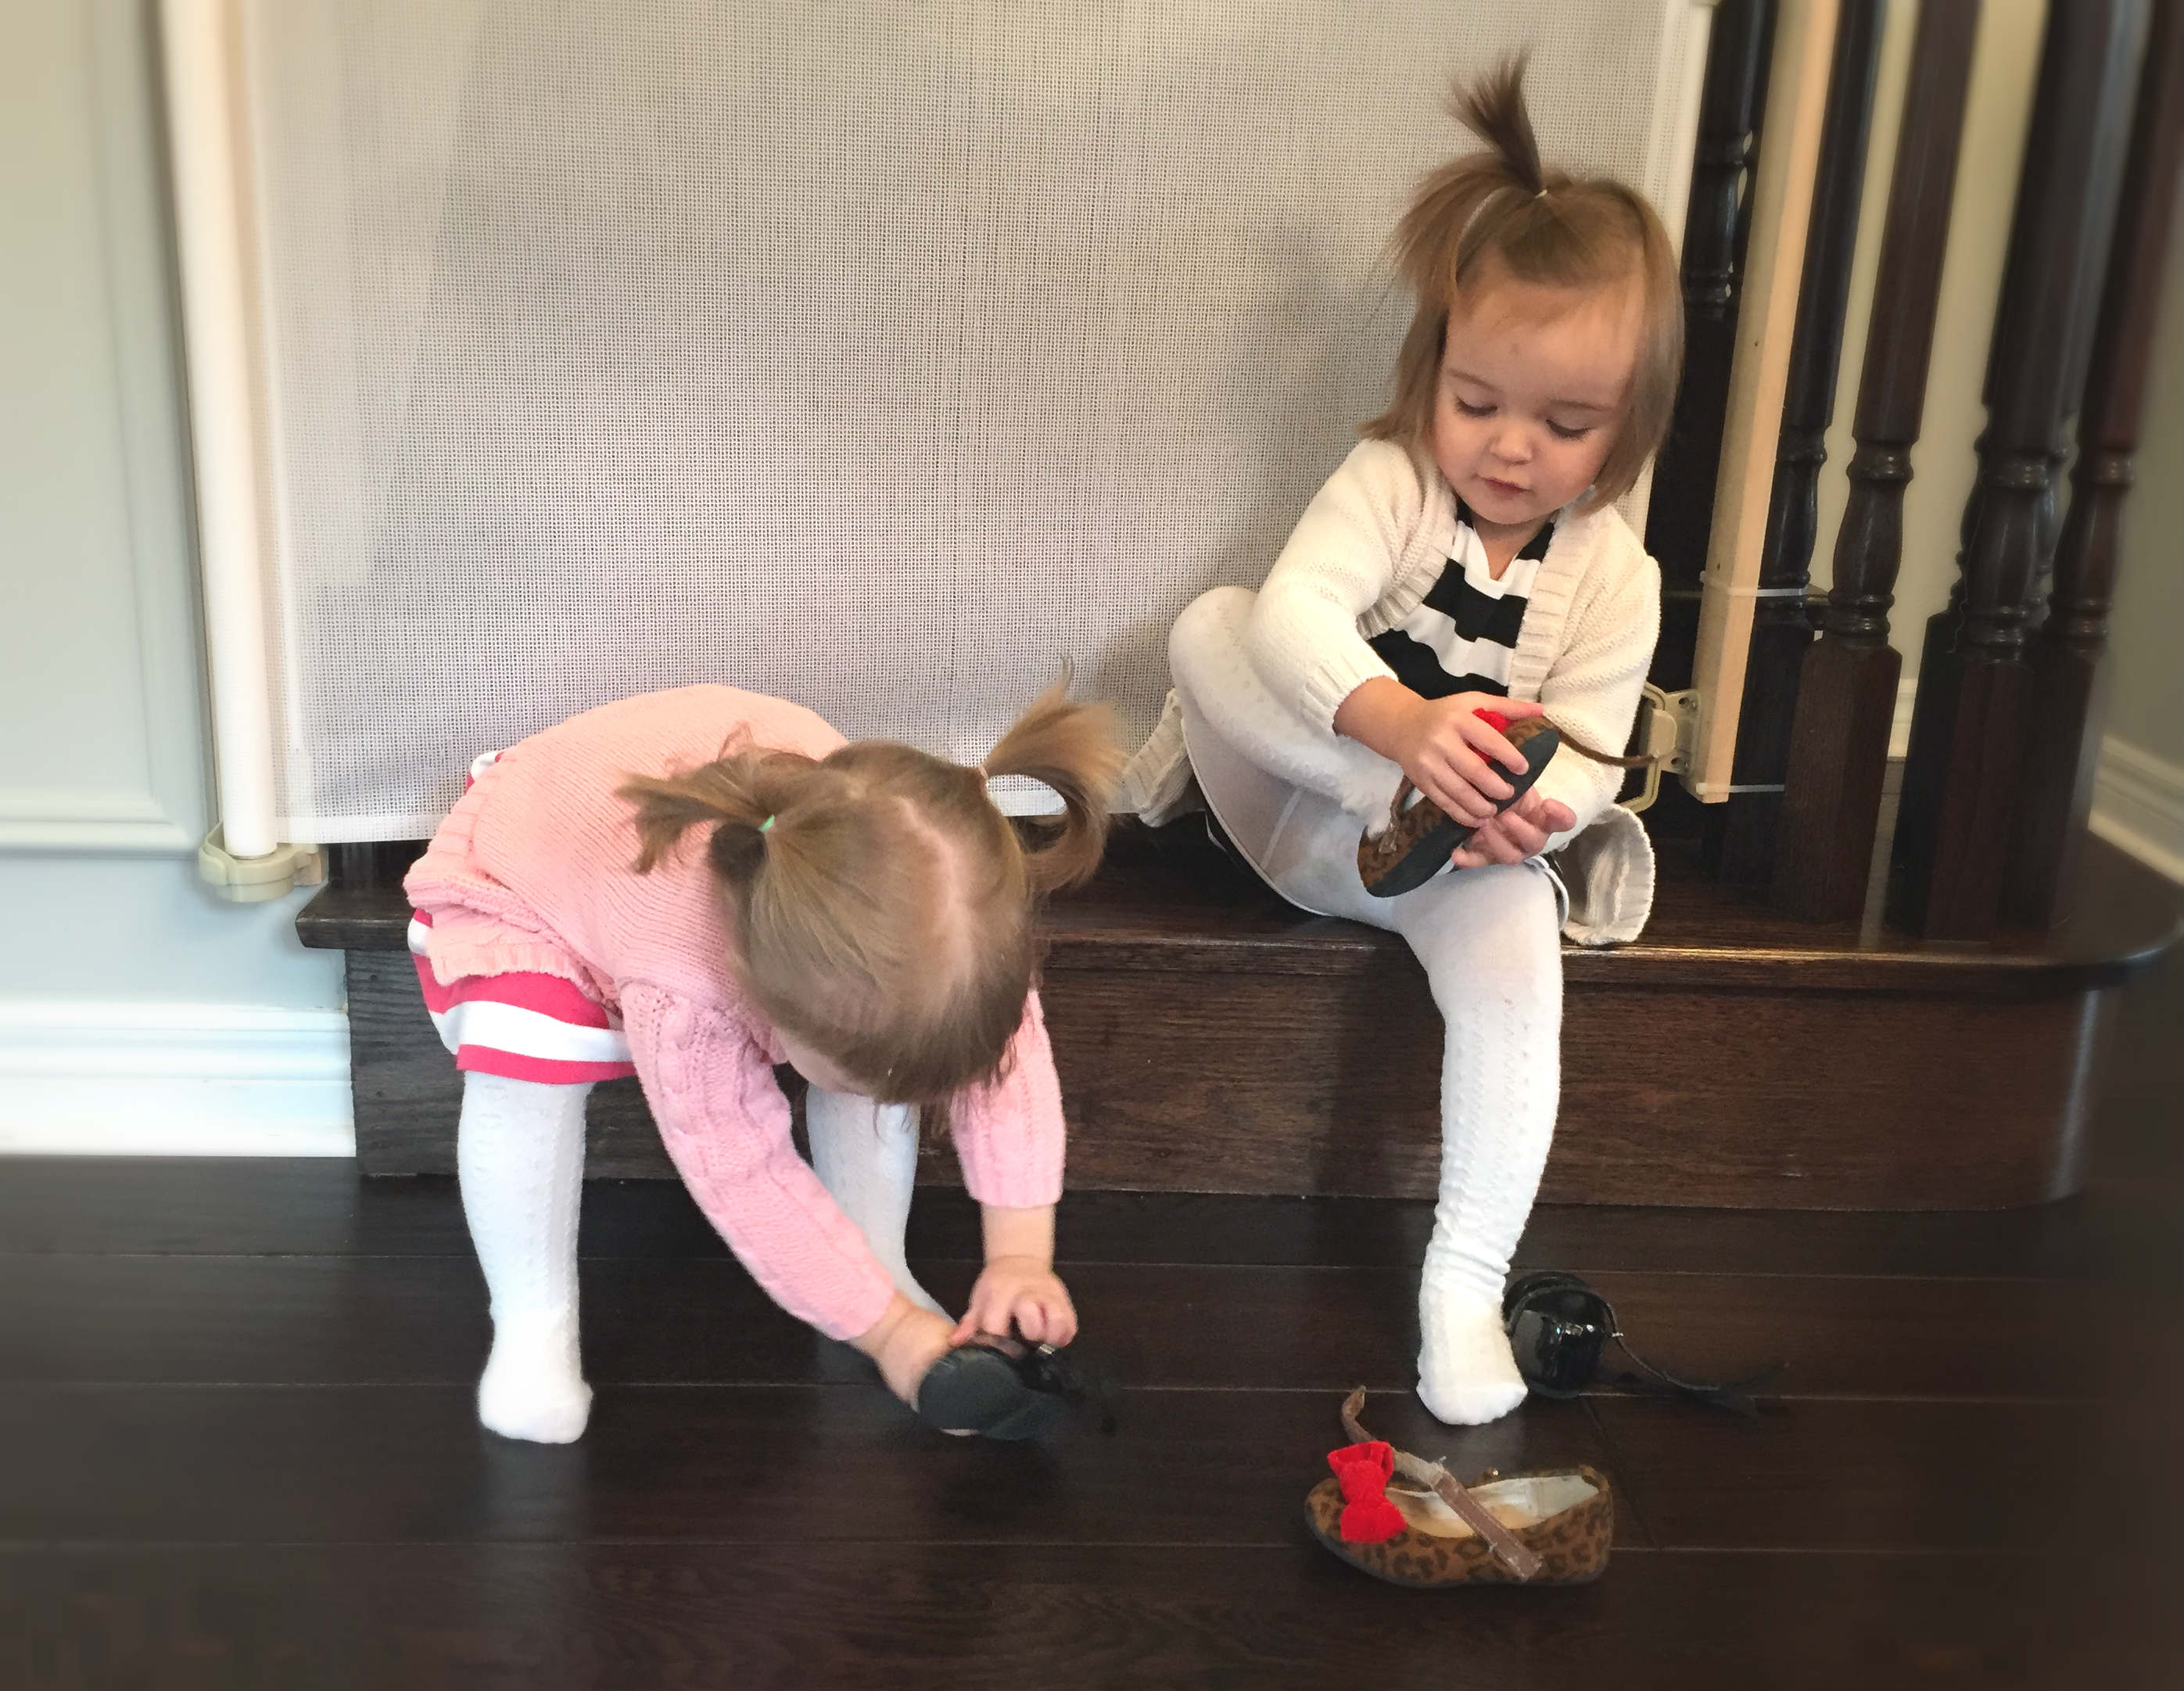 Twins putting shoes on